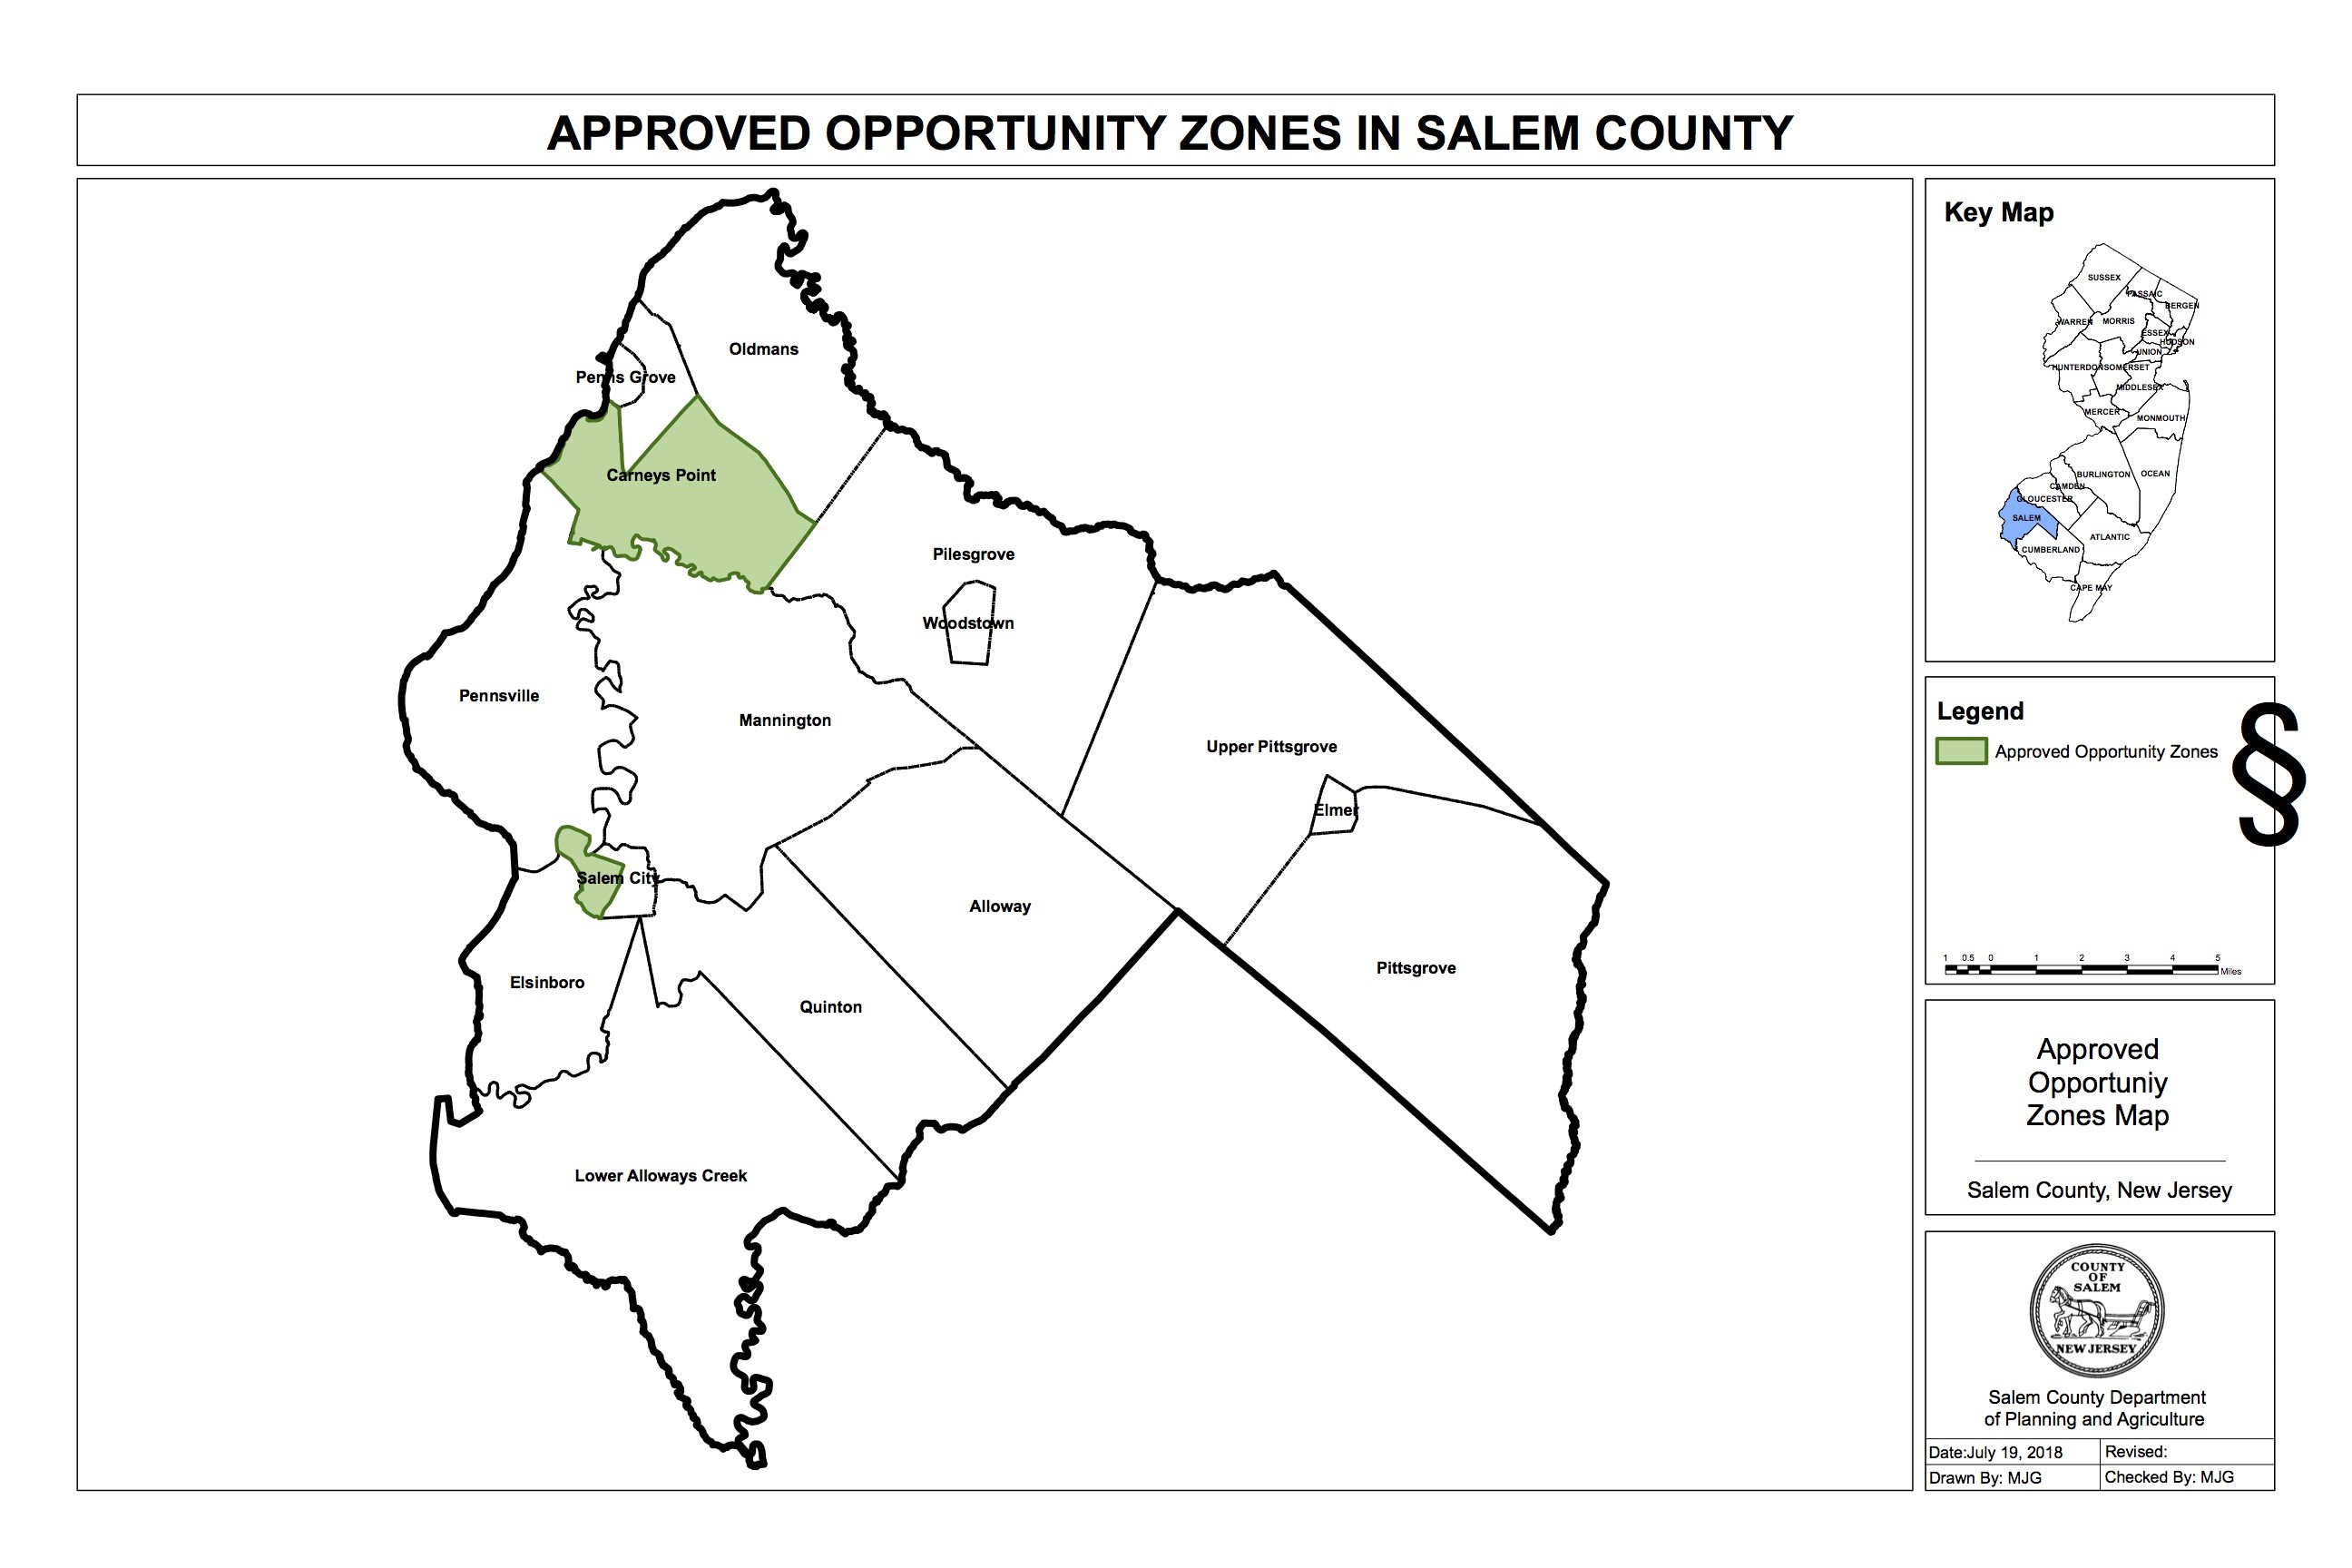 ApprovedOpportunityZones - Redevelopment Areas